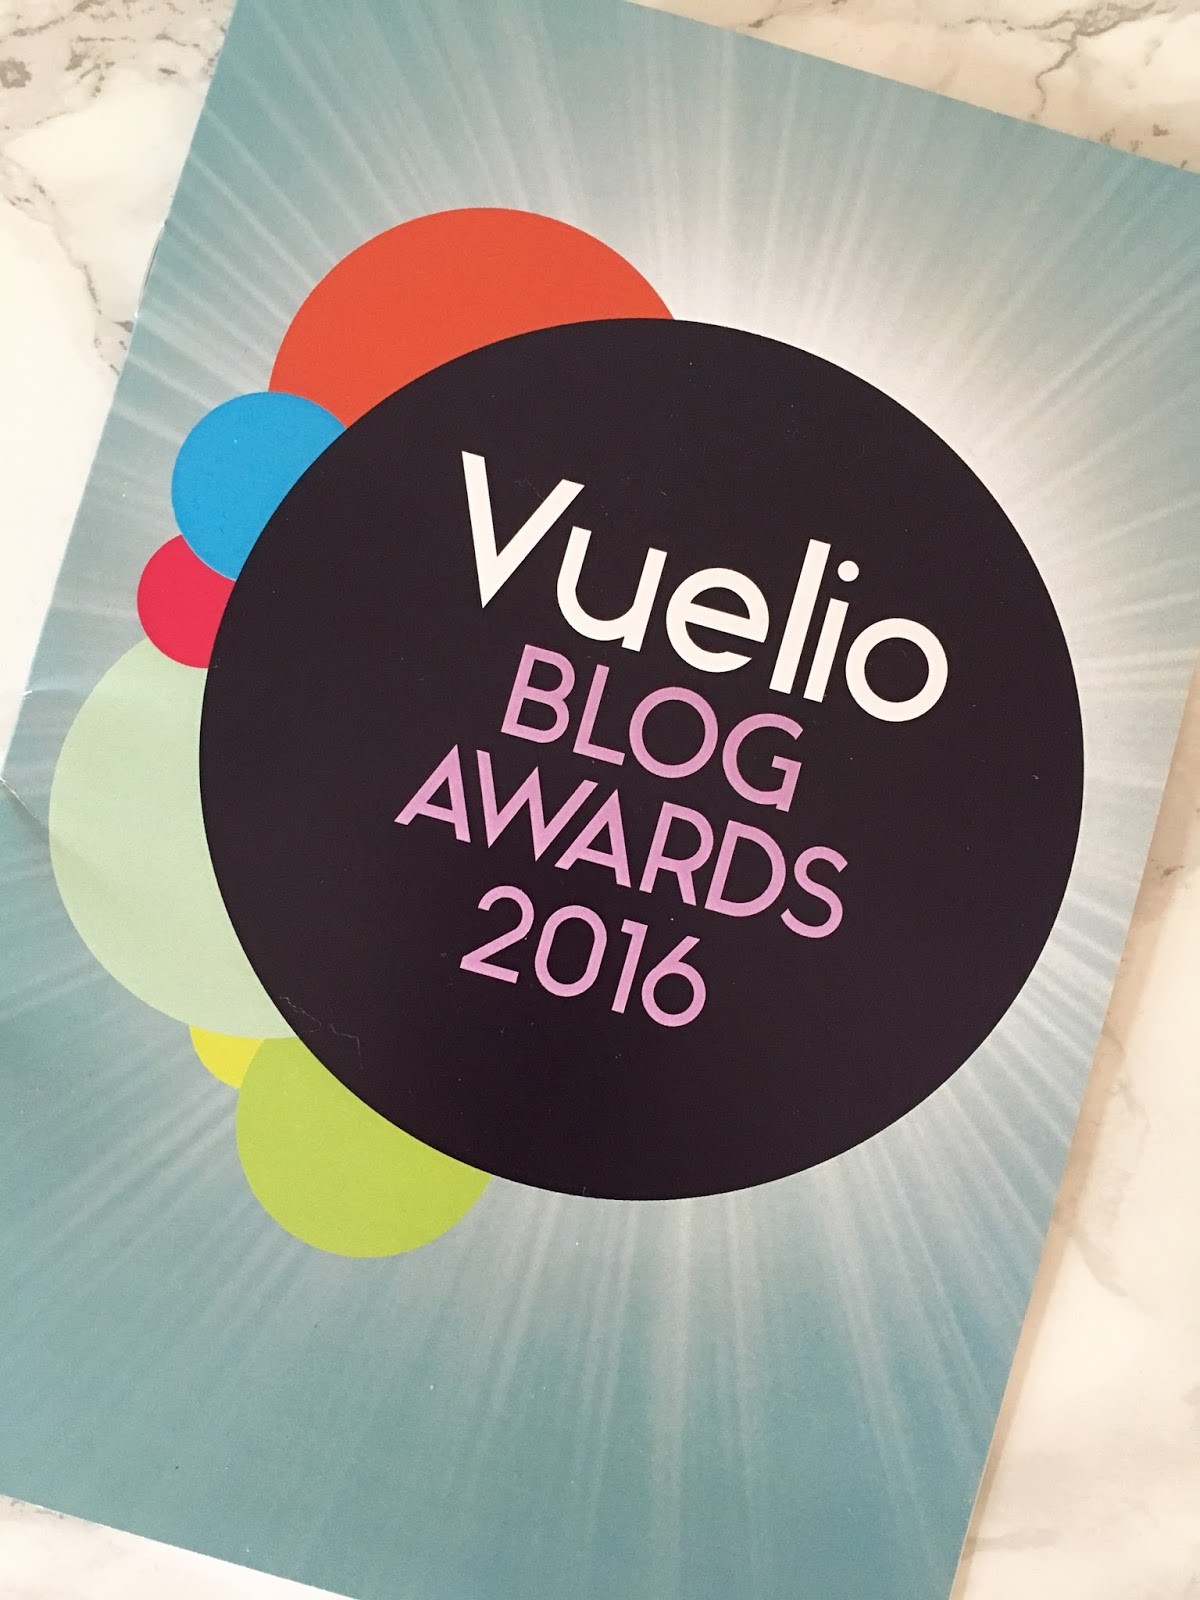 Vuelio blog awards London Priceless Life of Mine Over 40 lifestyle blog